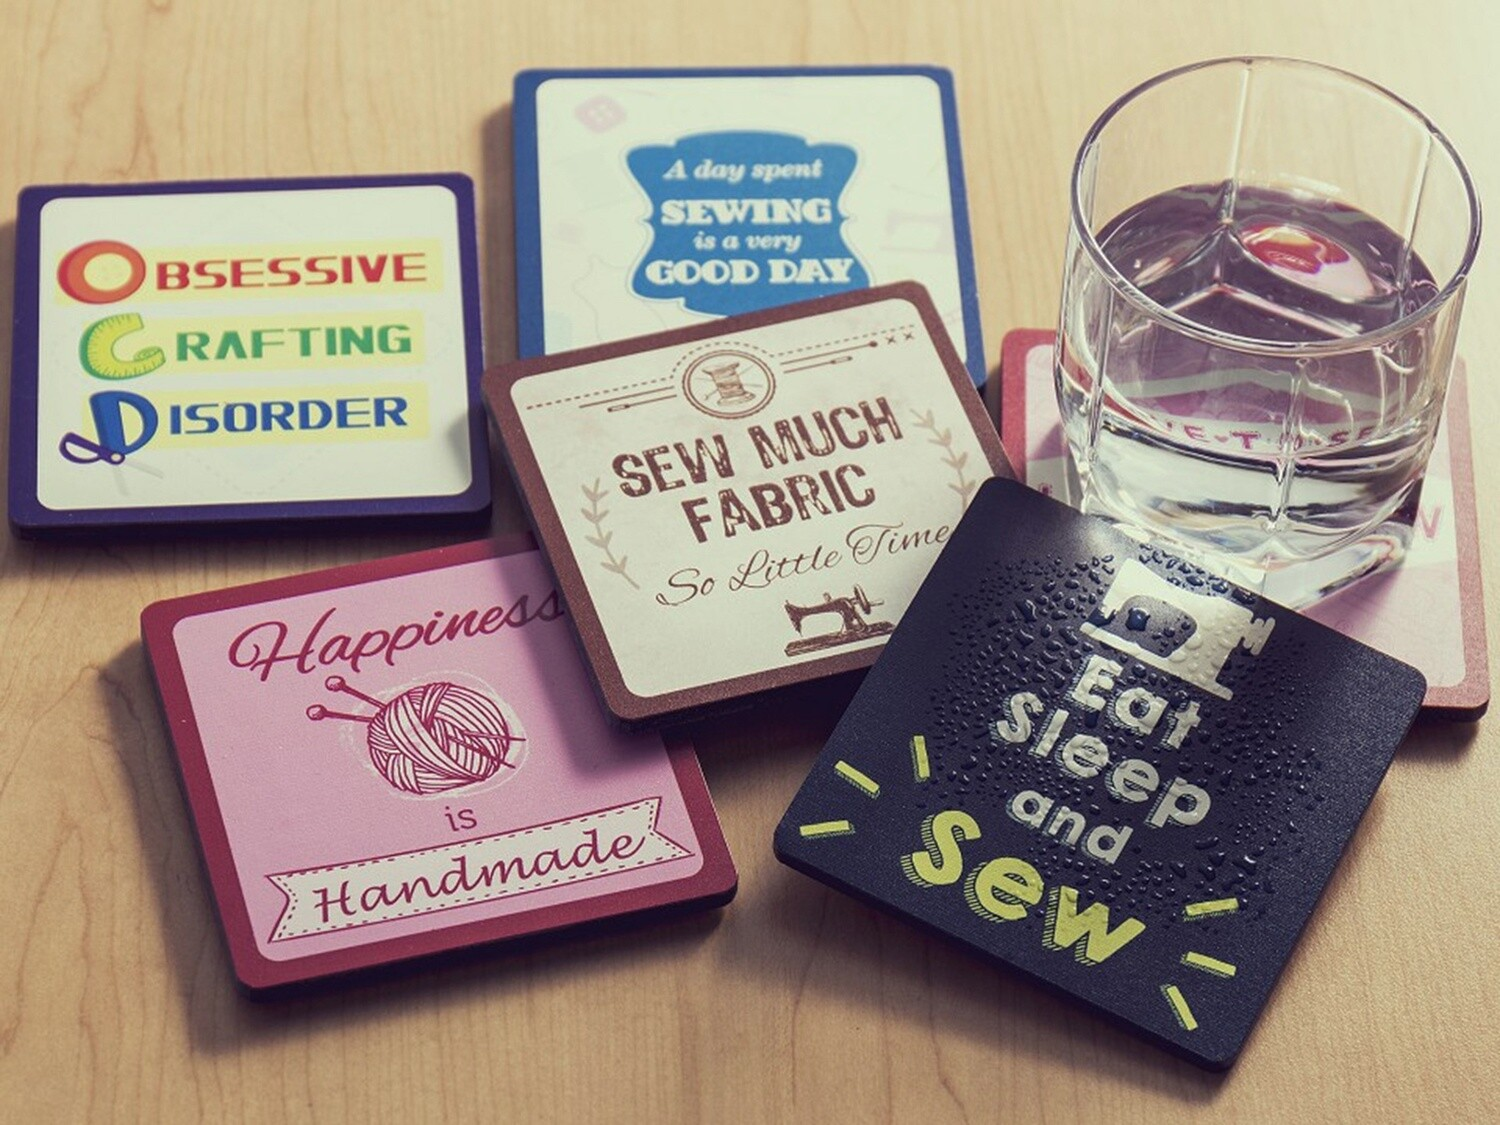 Sewing Themed Coasters: 6 designs